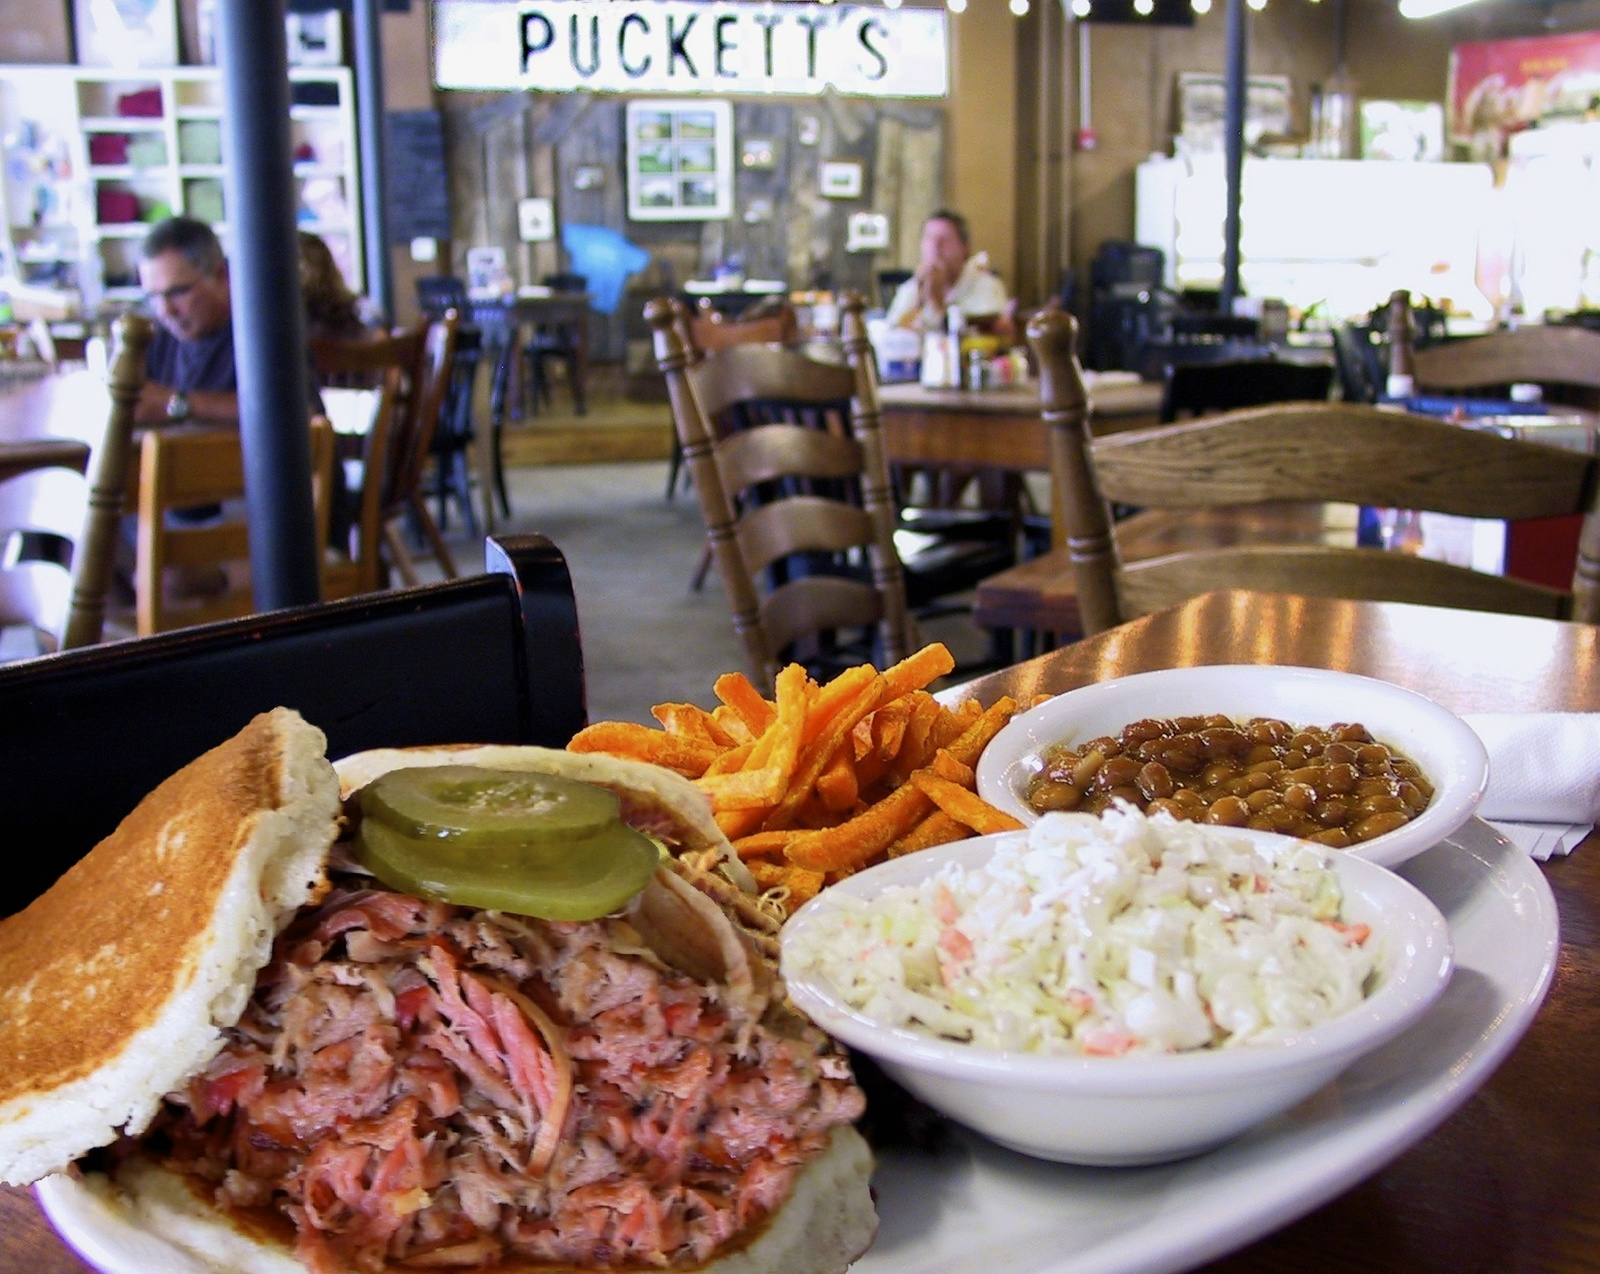 Puckett's Restaurant and Grocery